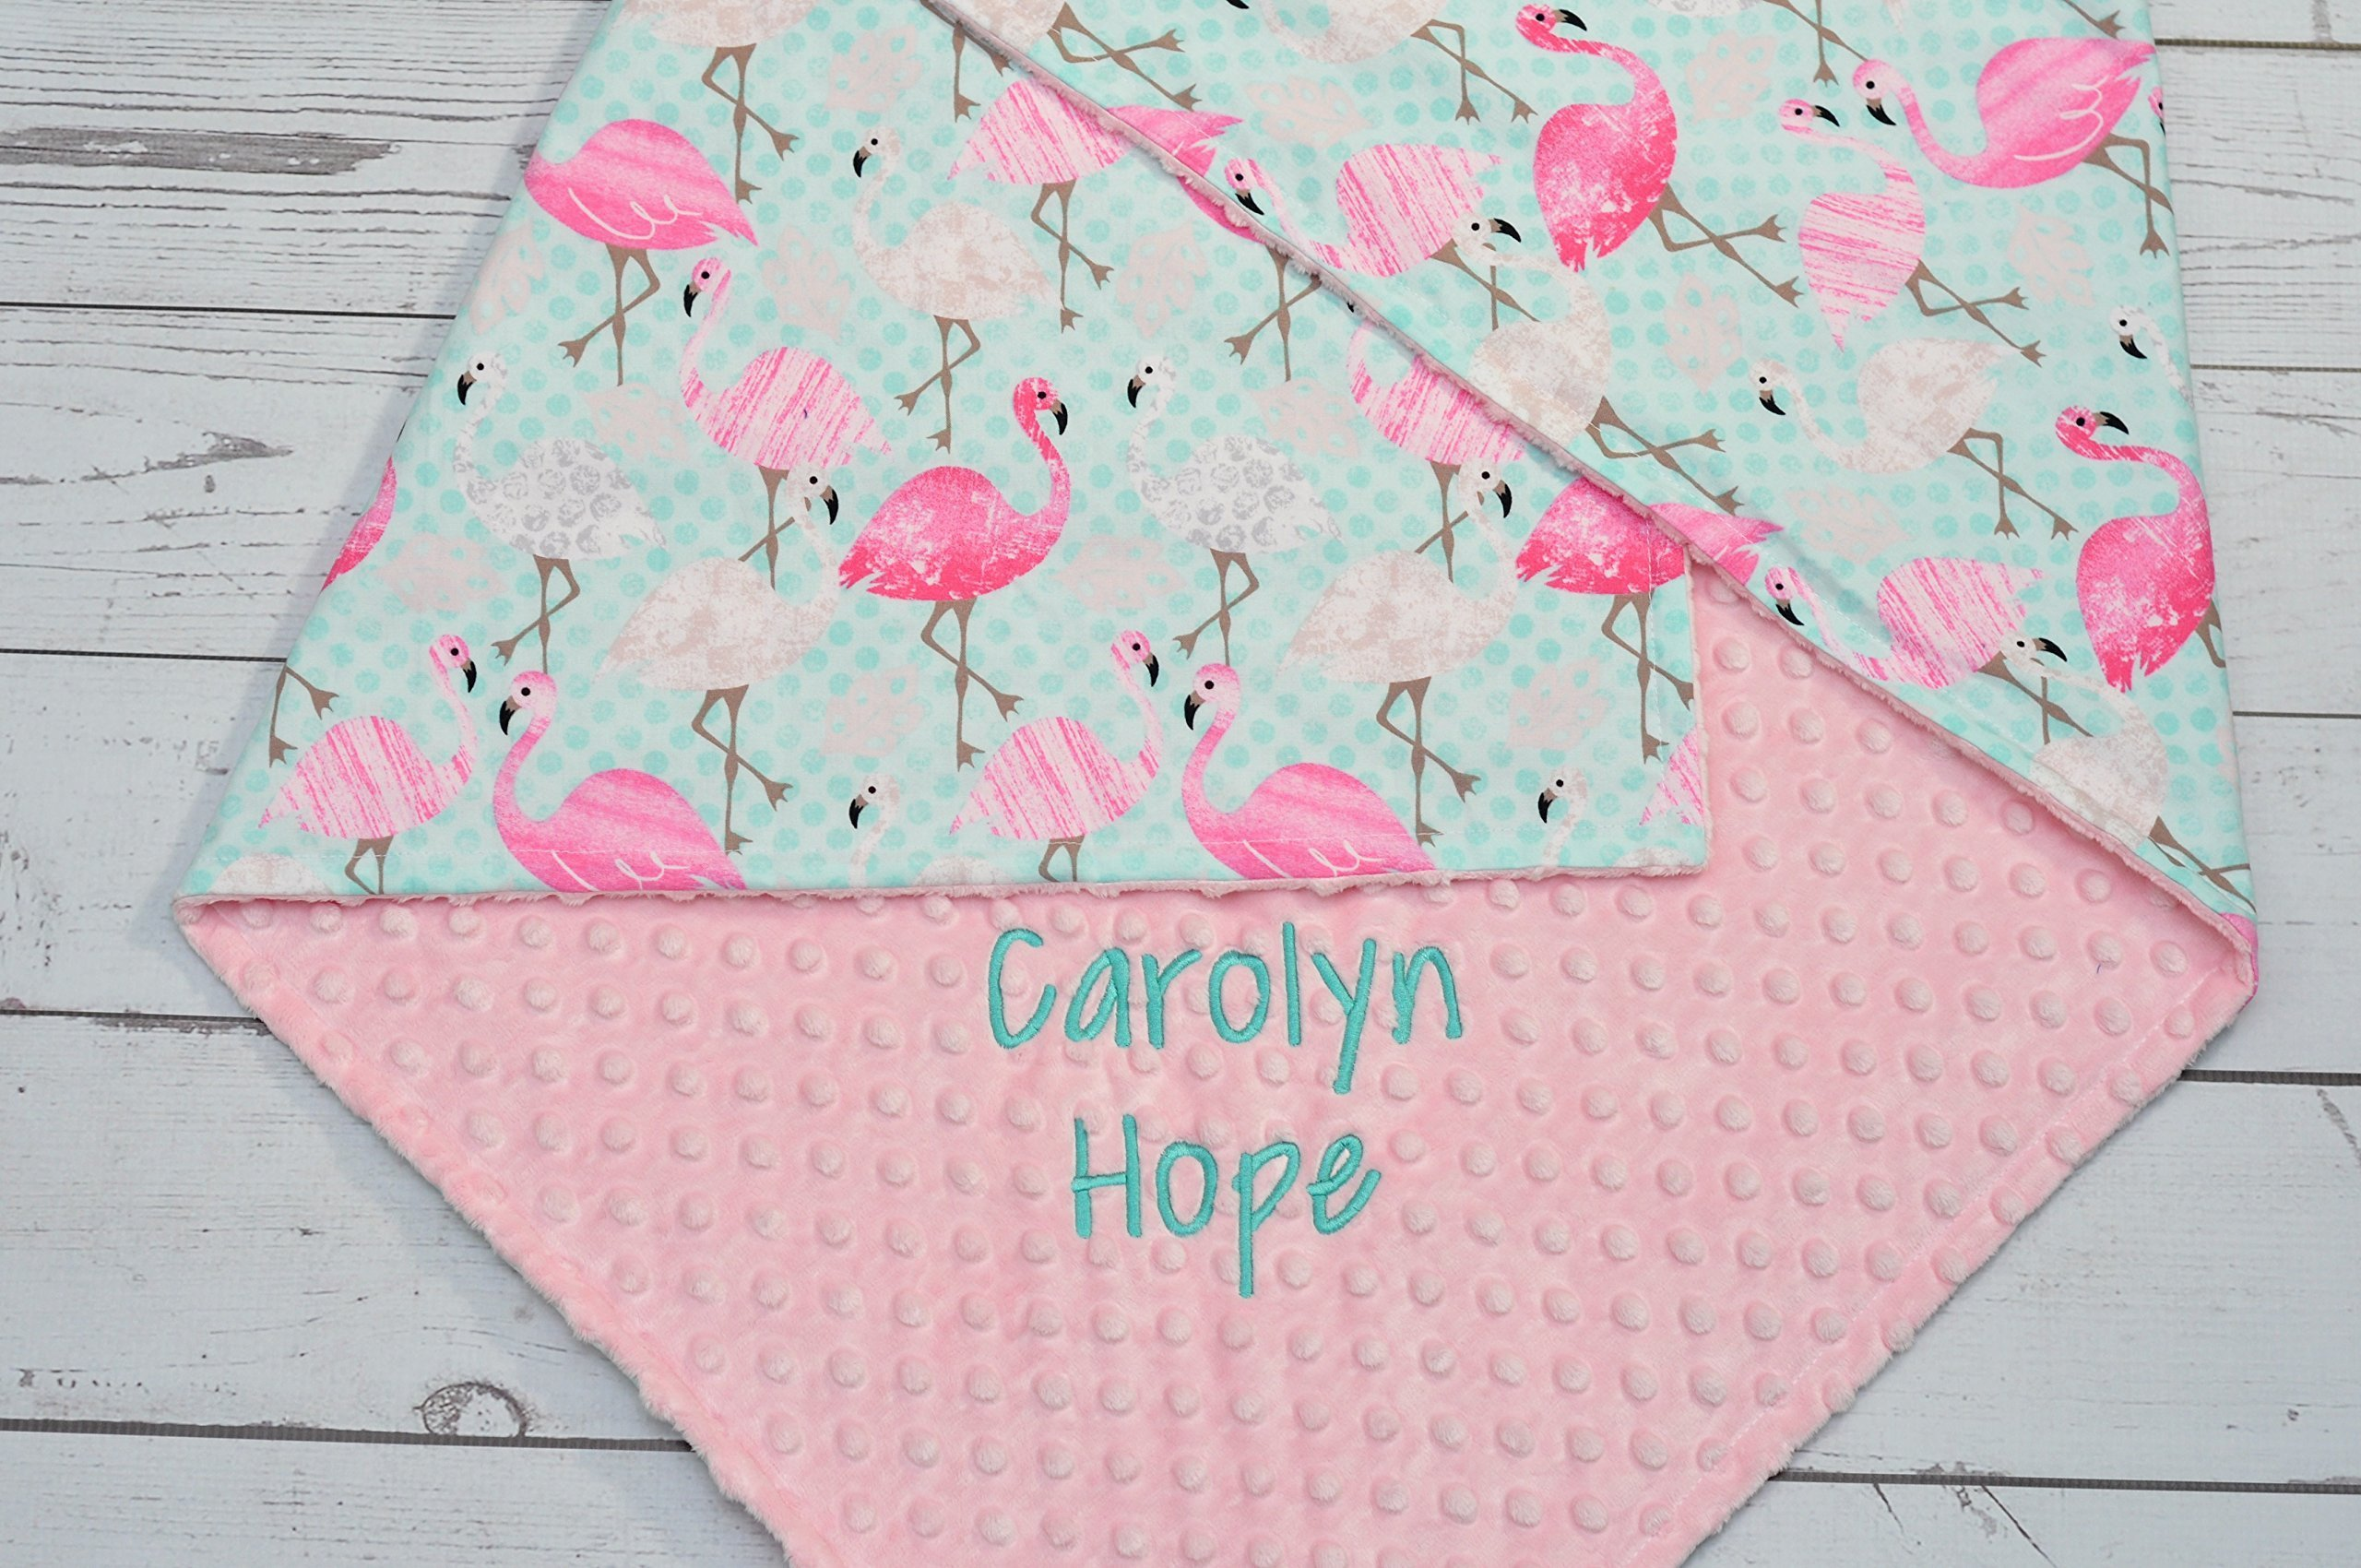 Personalized baby blanket - Personalized minky baby blanket - Minky baby blanket pink Flamingo - Personalized Pink Flamingo minky baby blanket - Flamingo baby girl blanket